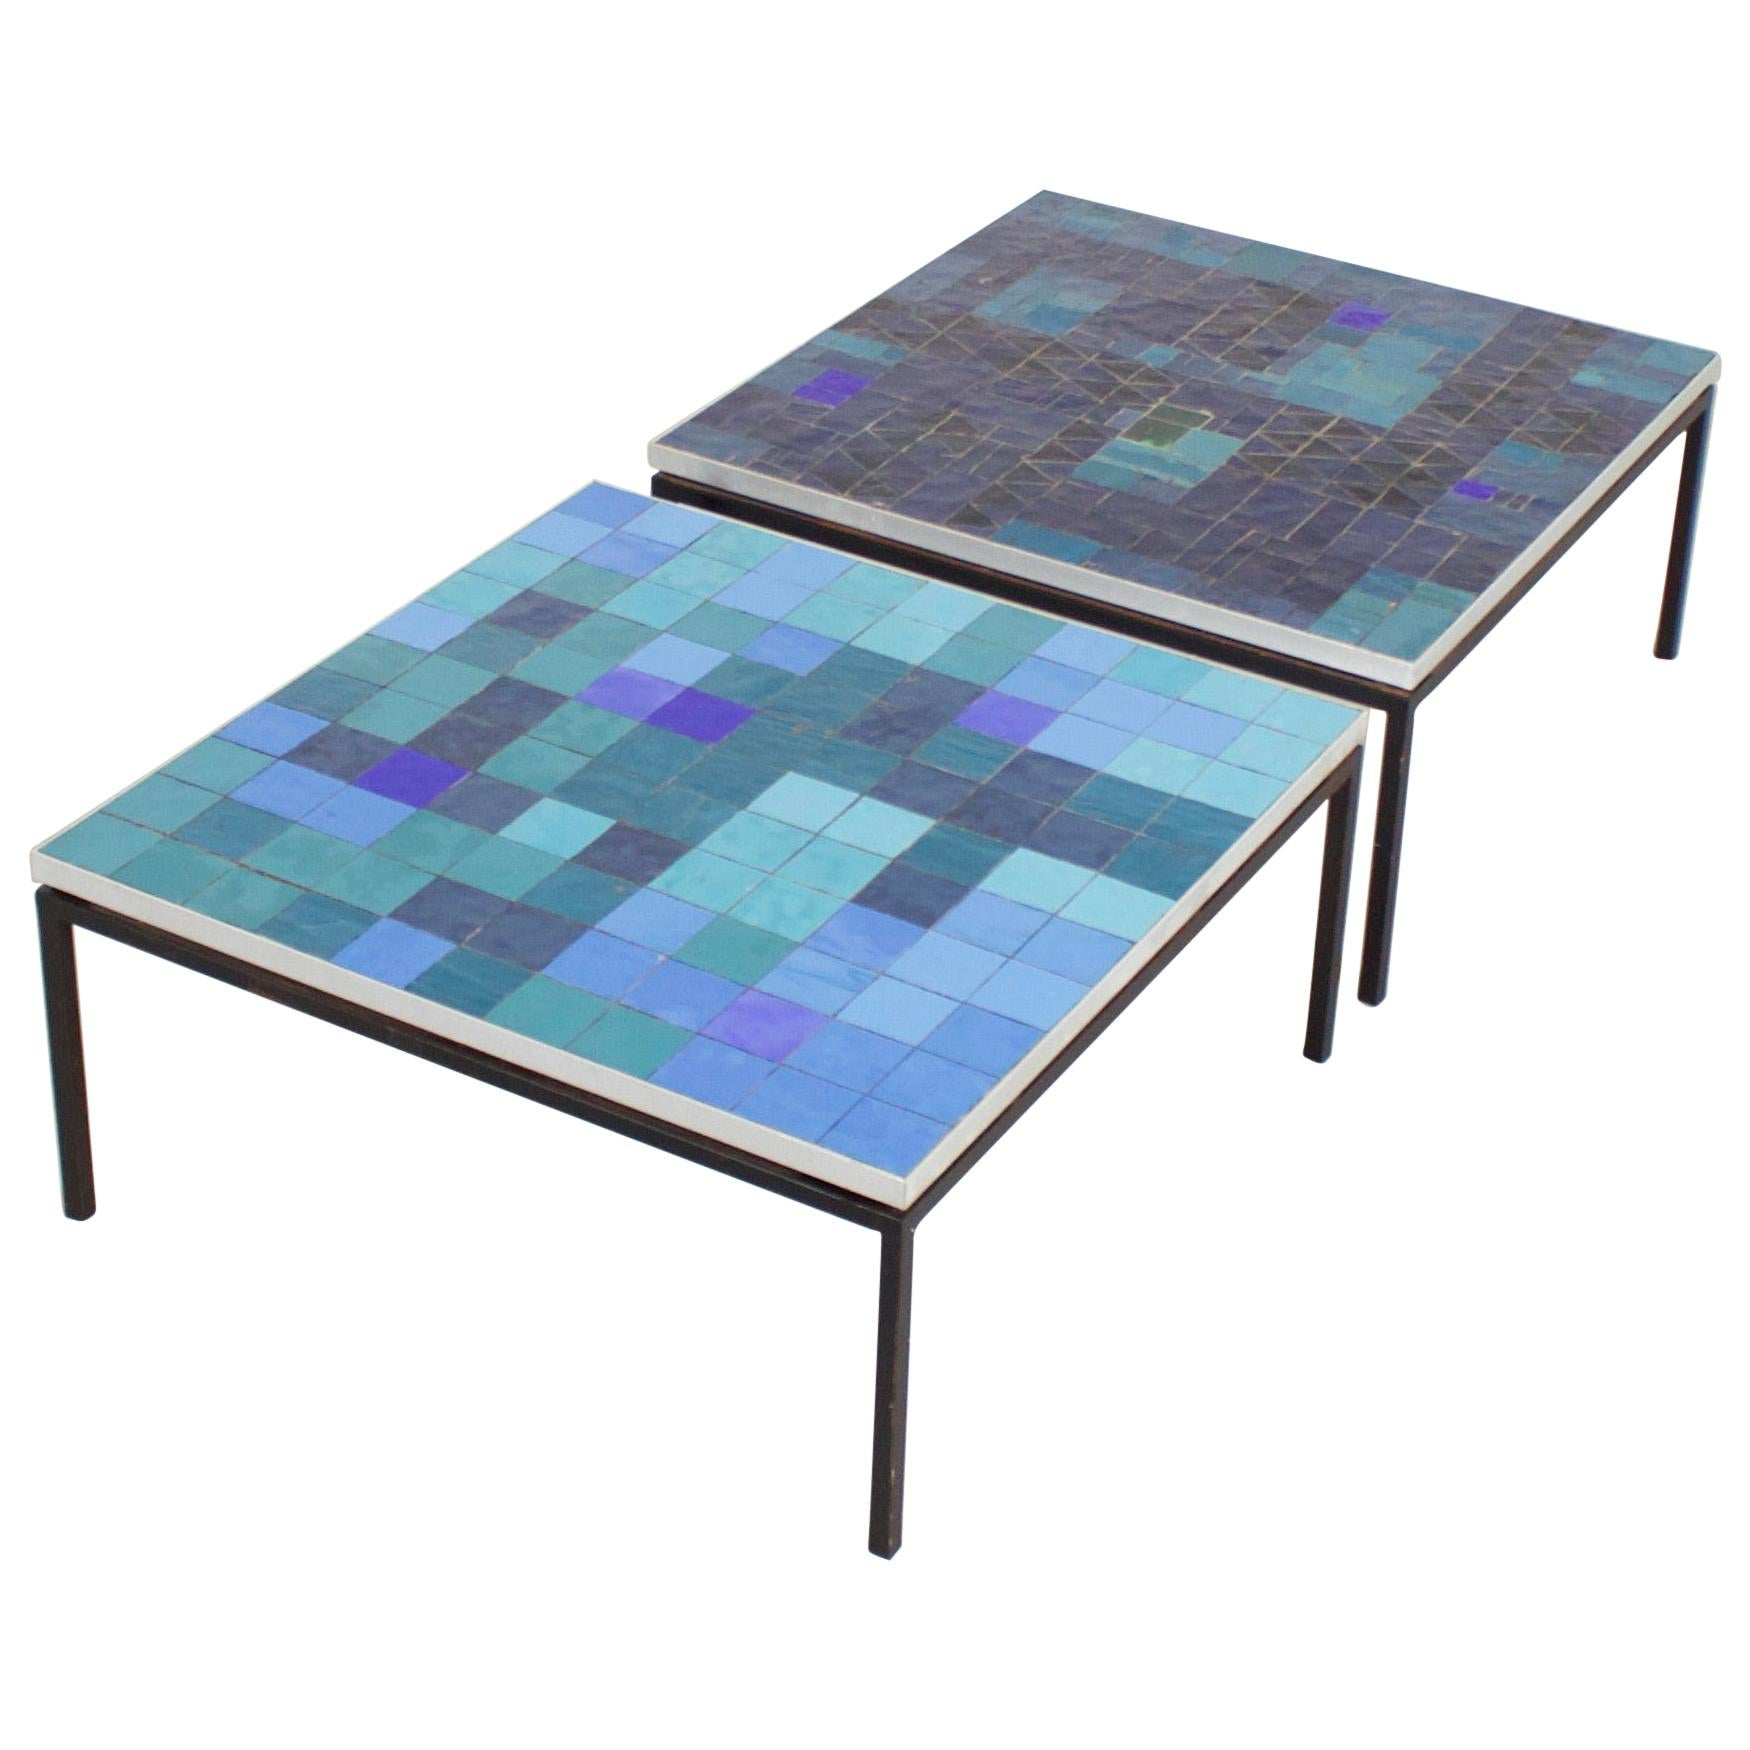 1 2 impressive mosaic tile coffee table by berthold muller 1960s